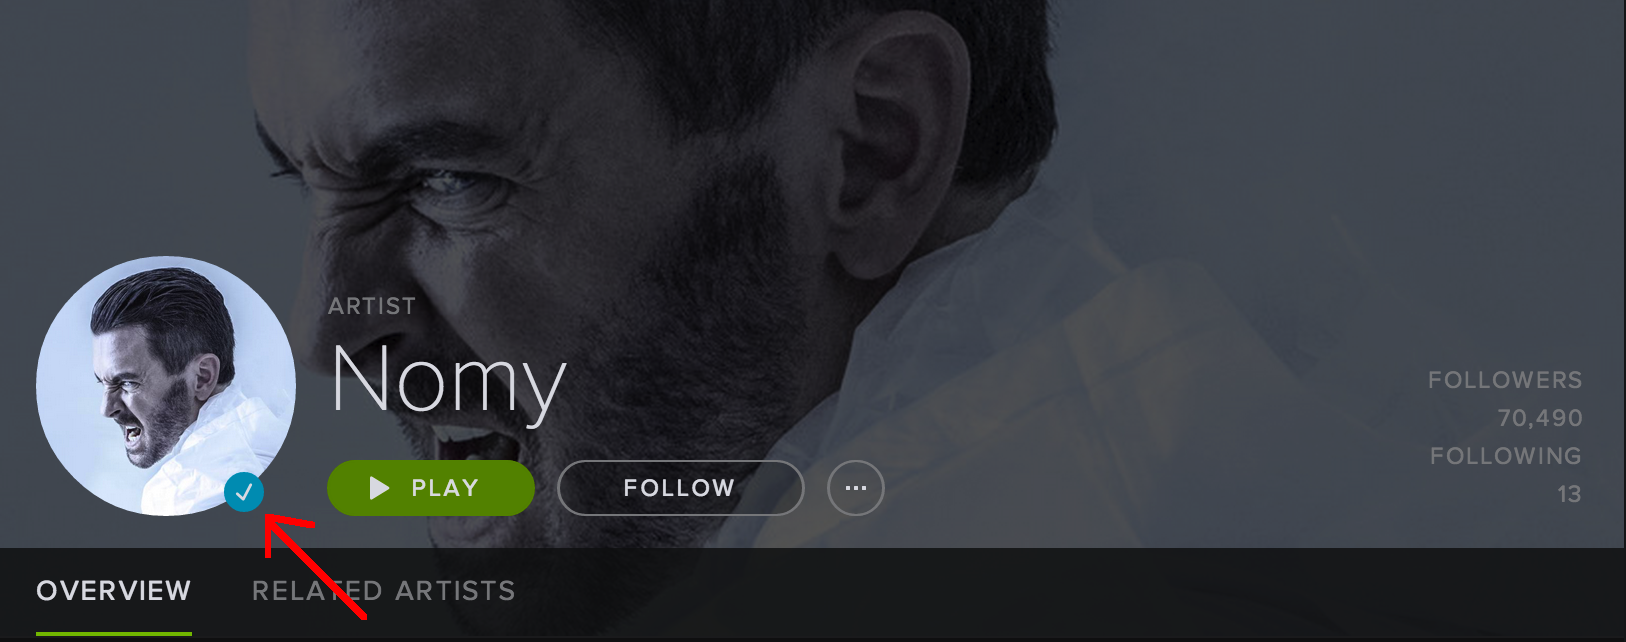 Nomy Spotify Artist Page